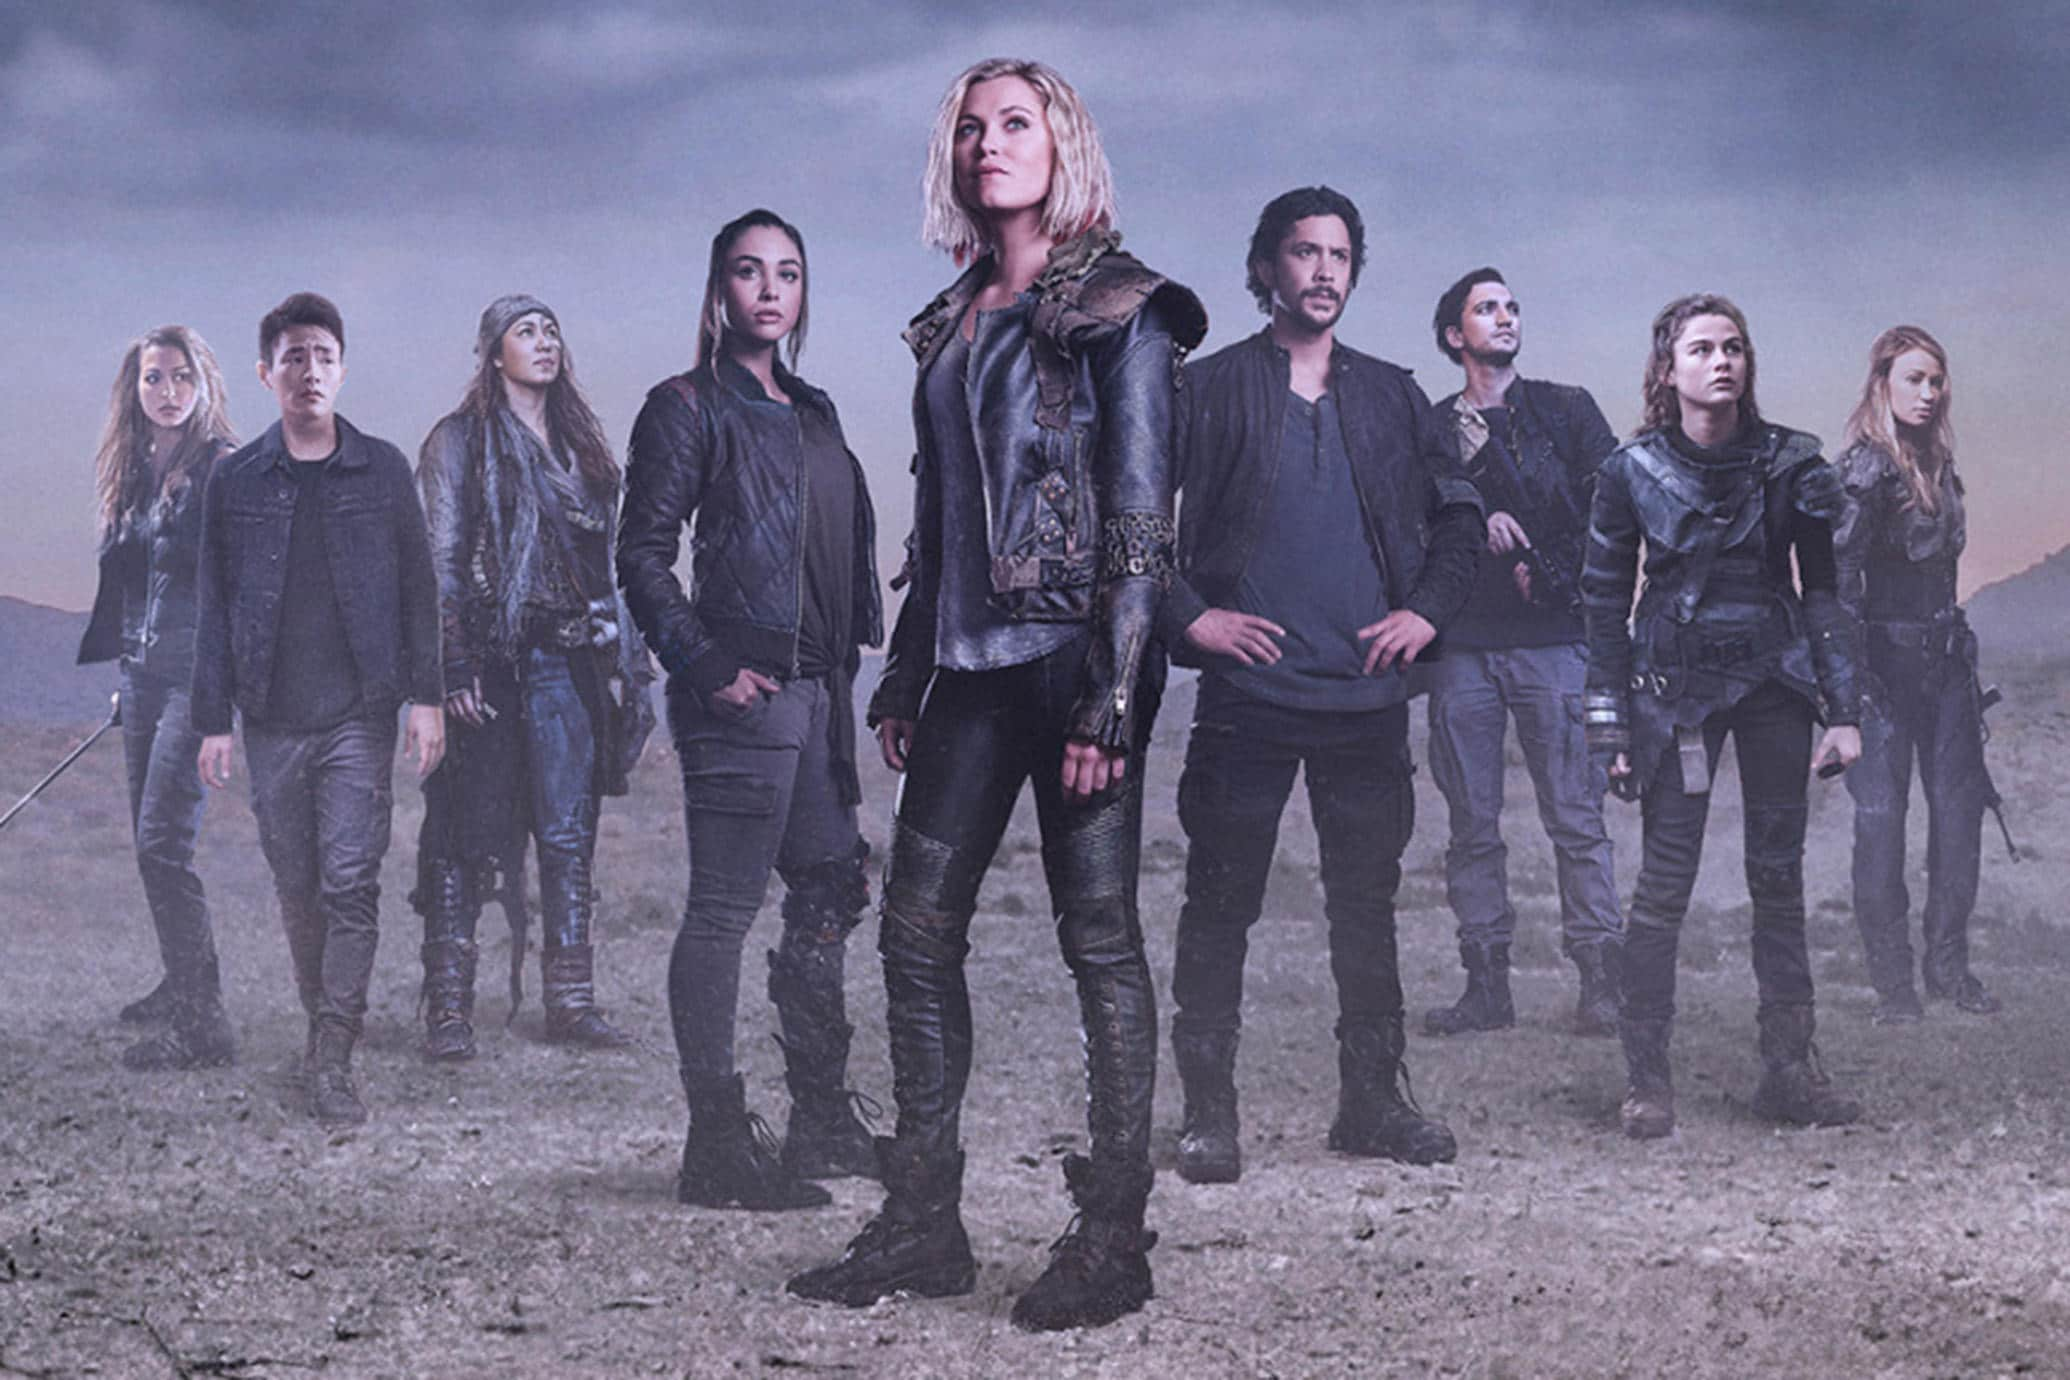 In which year did The 100 become available on Netflix? 45